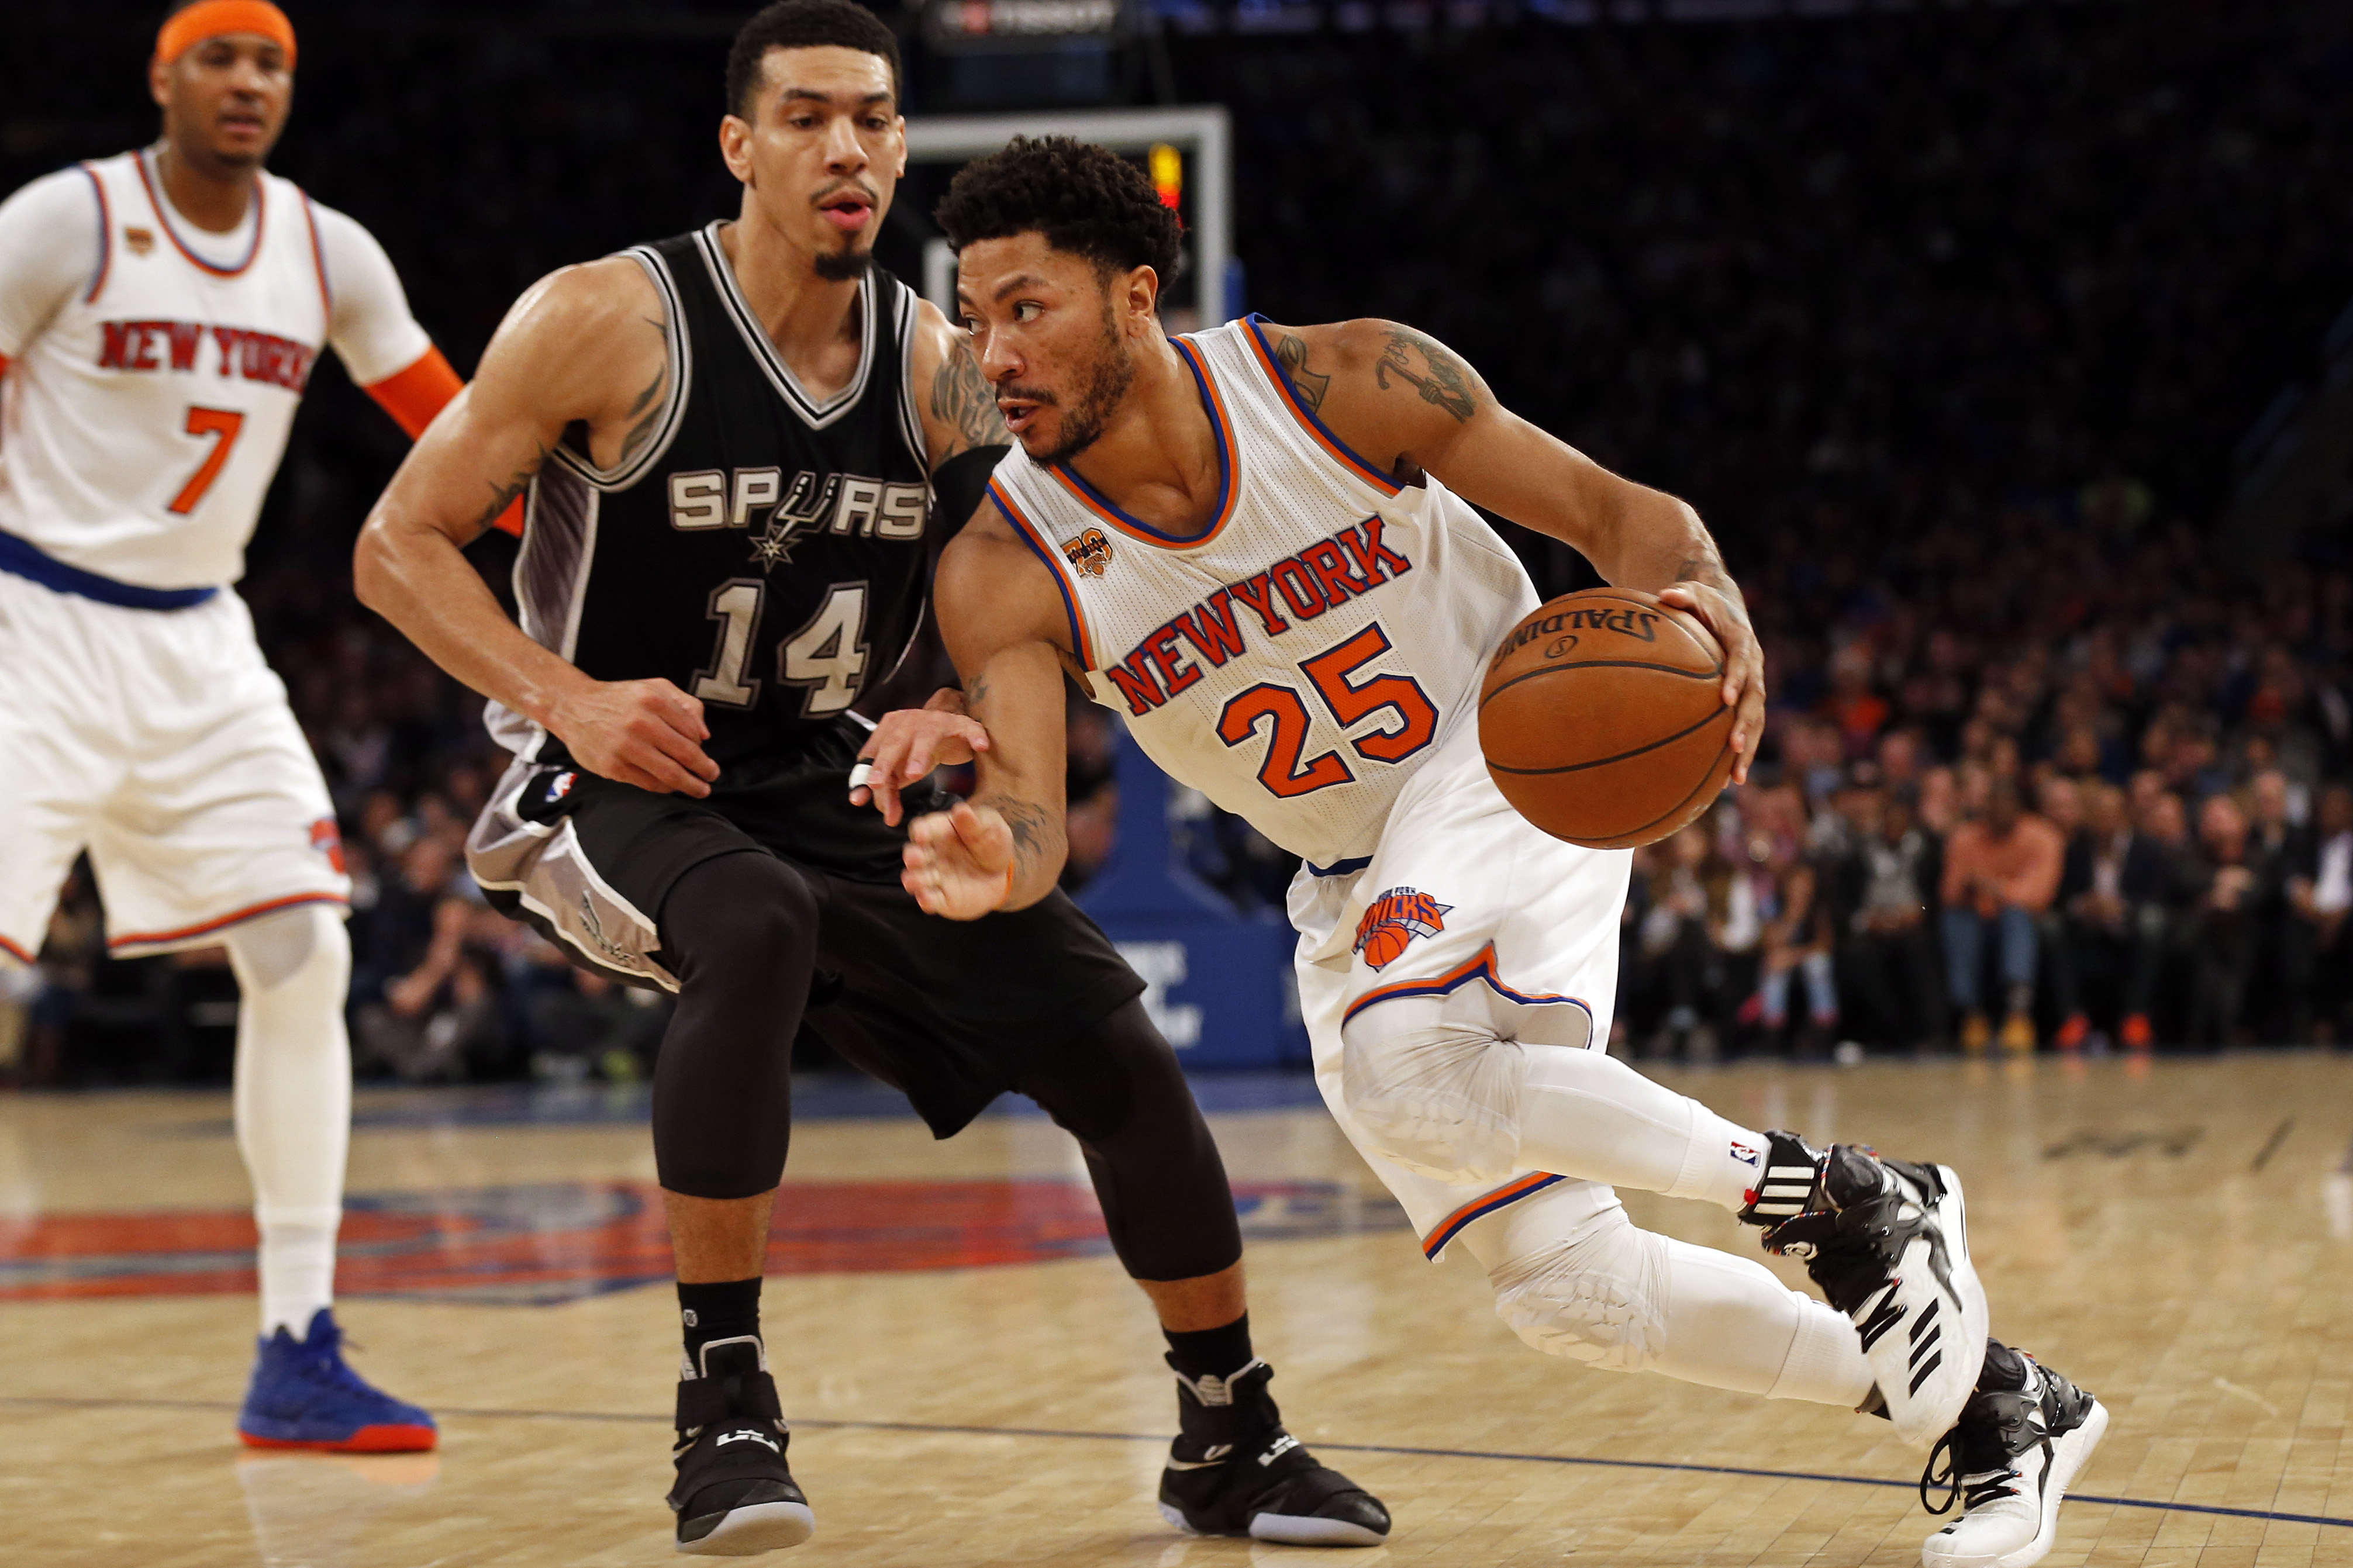 aac6942ce5e3 San Antonio Spurs  Pros and cons of signing Derrick Rose - Page 2